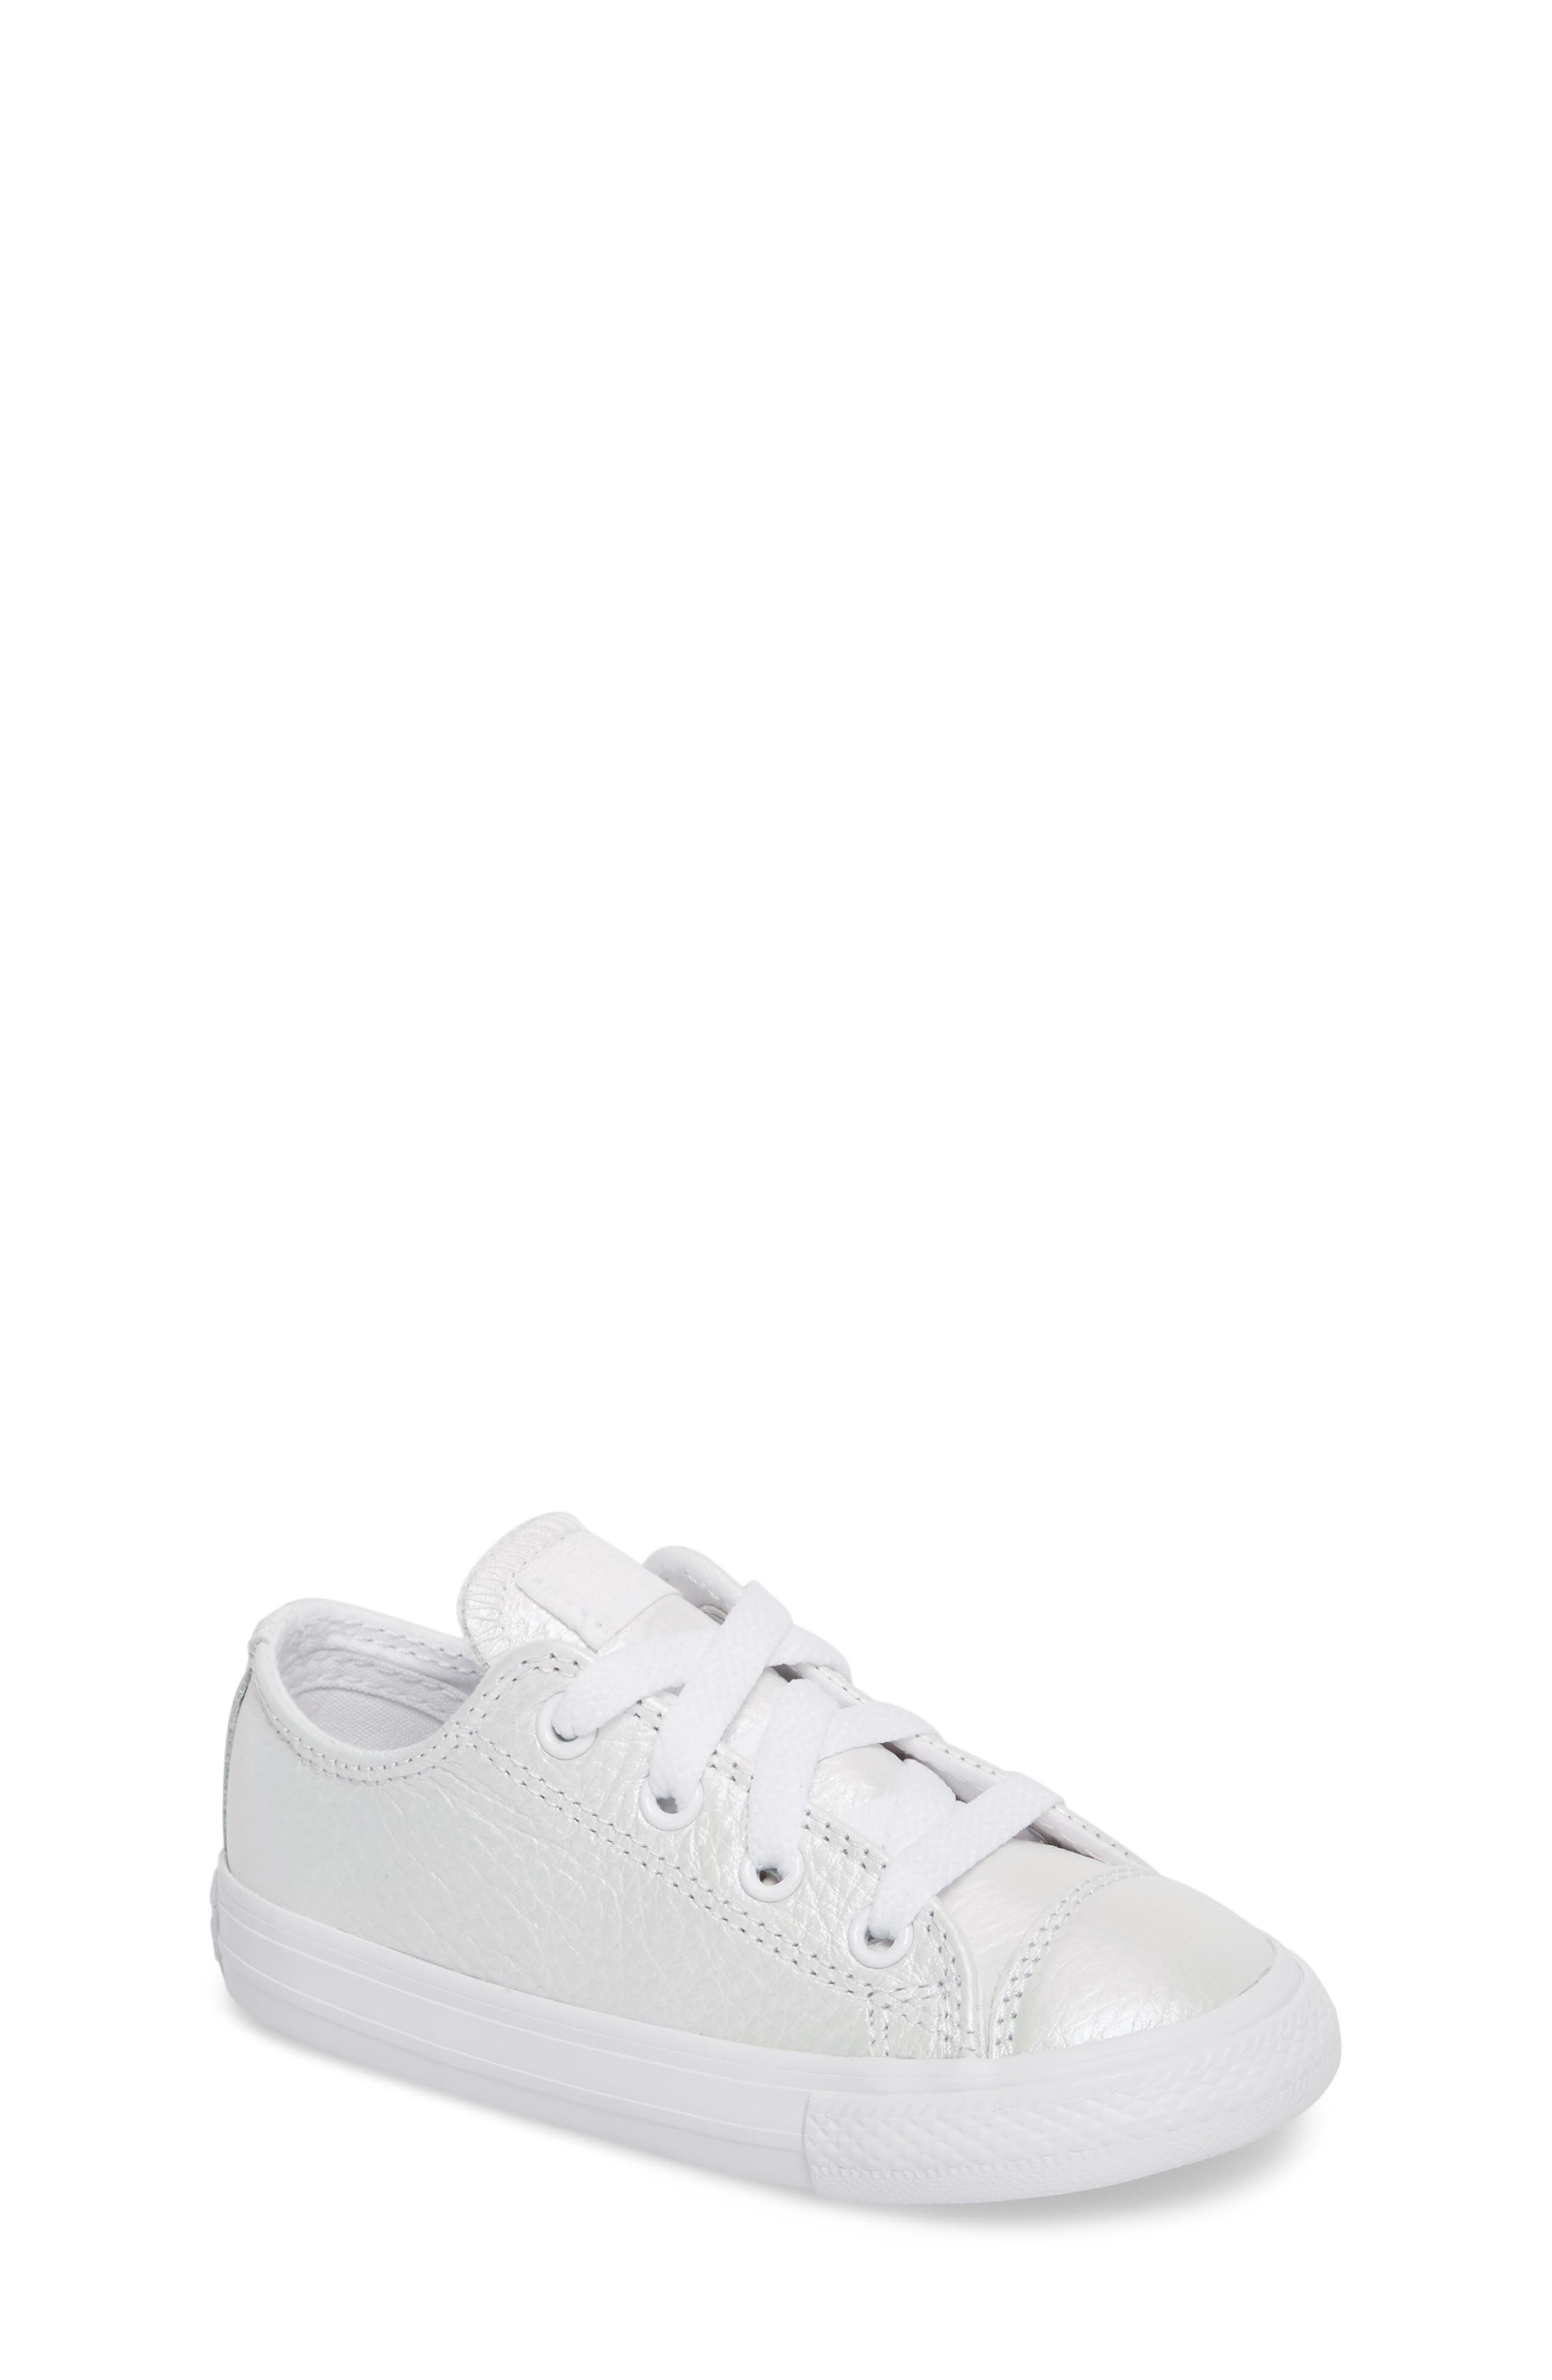 Chuck Taylor<sup>®</sup> All Star<sup>®</sup> Iridescent Sneaker,                         Main,                         color, 100